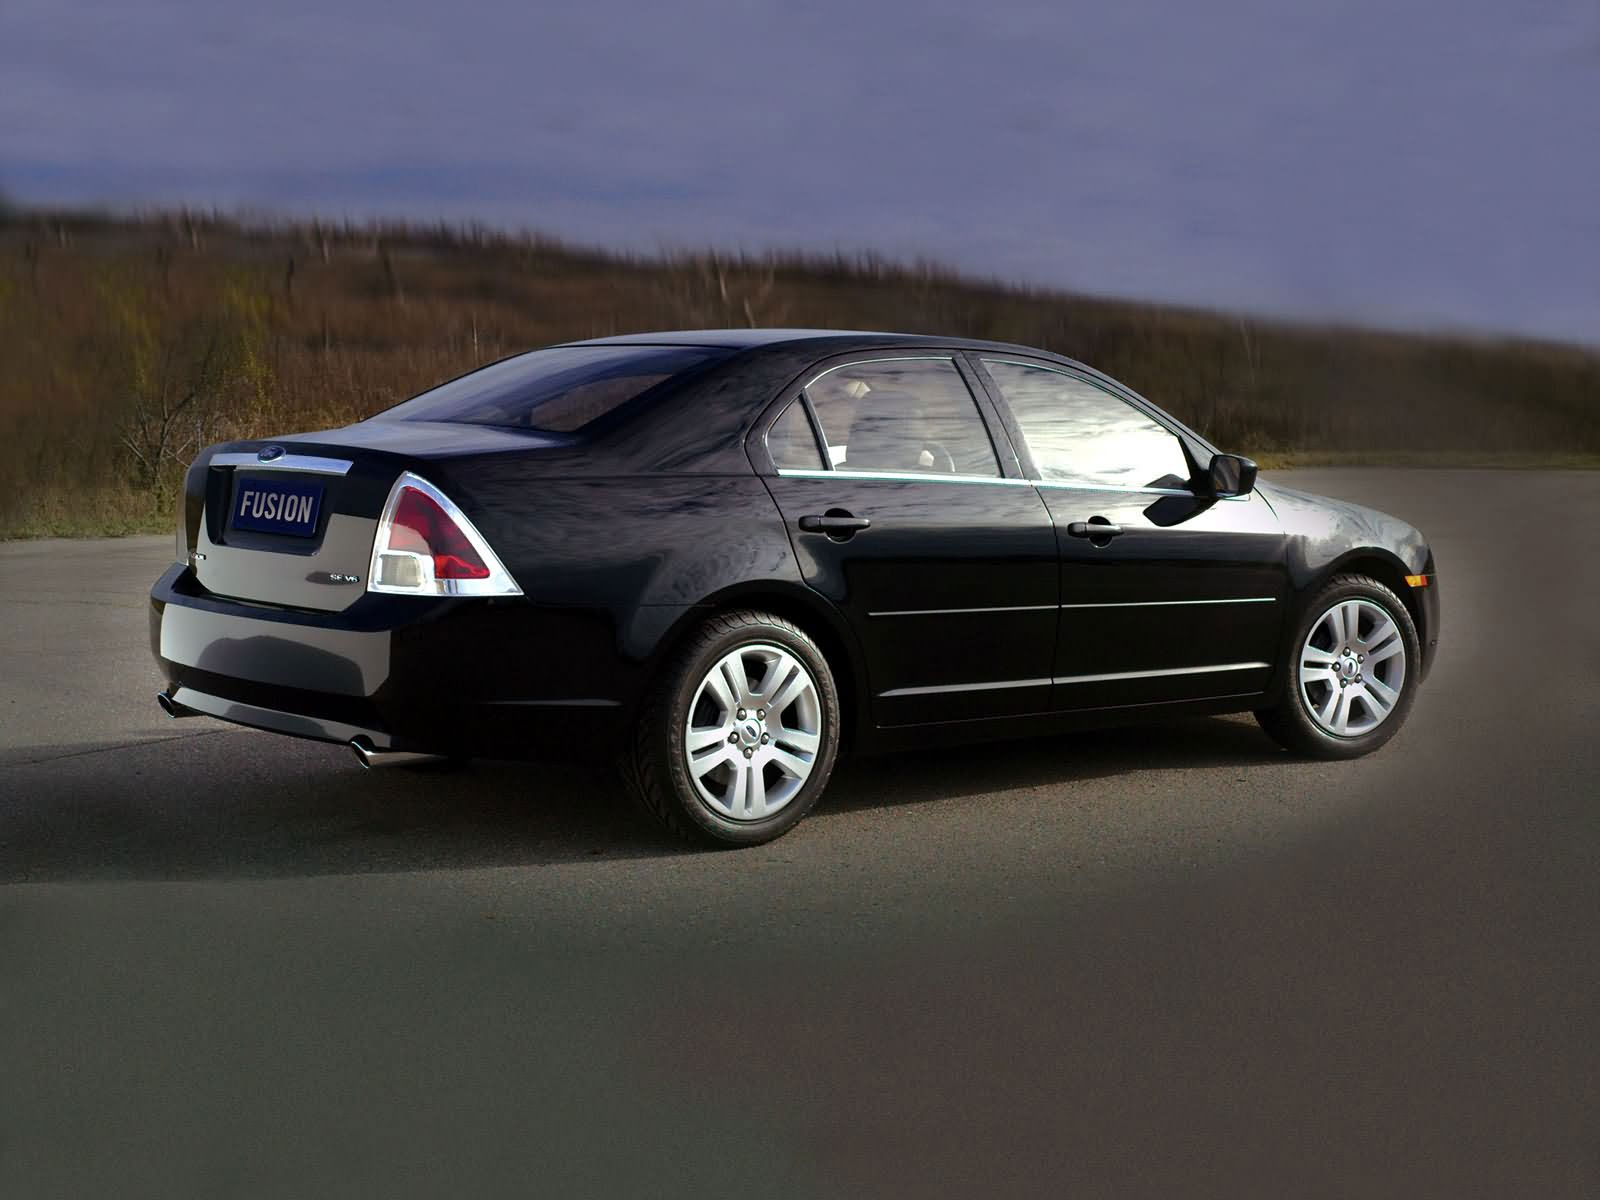 Ford Fusion 22 Cool Hd Wallpaper